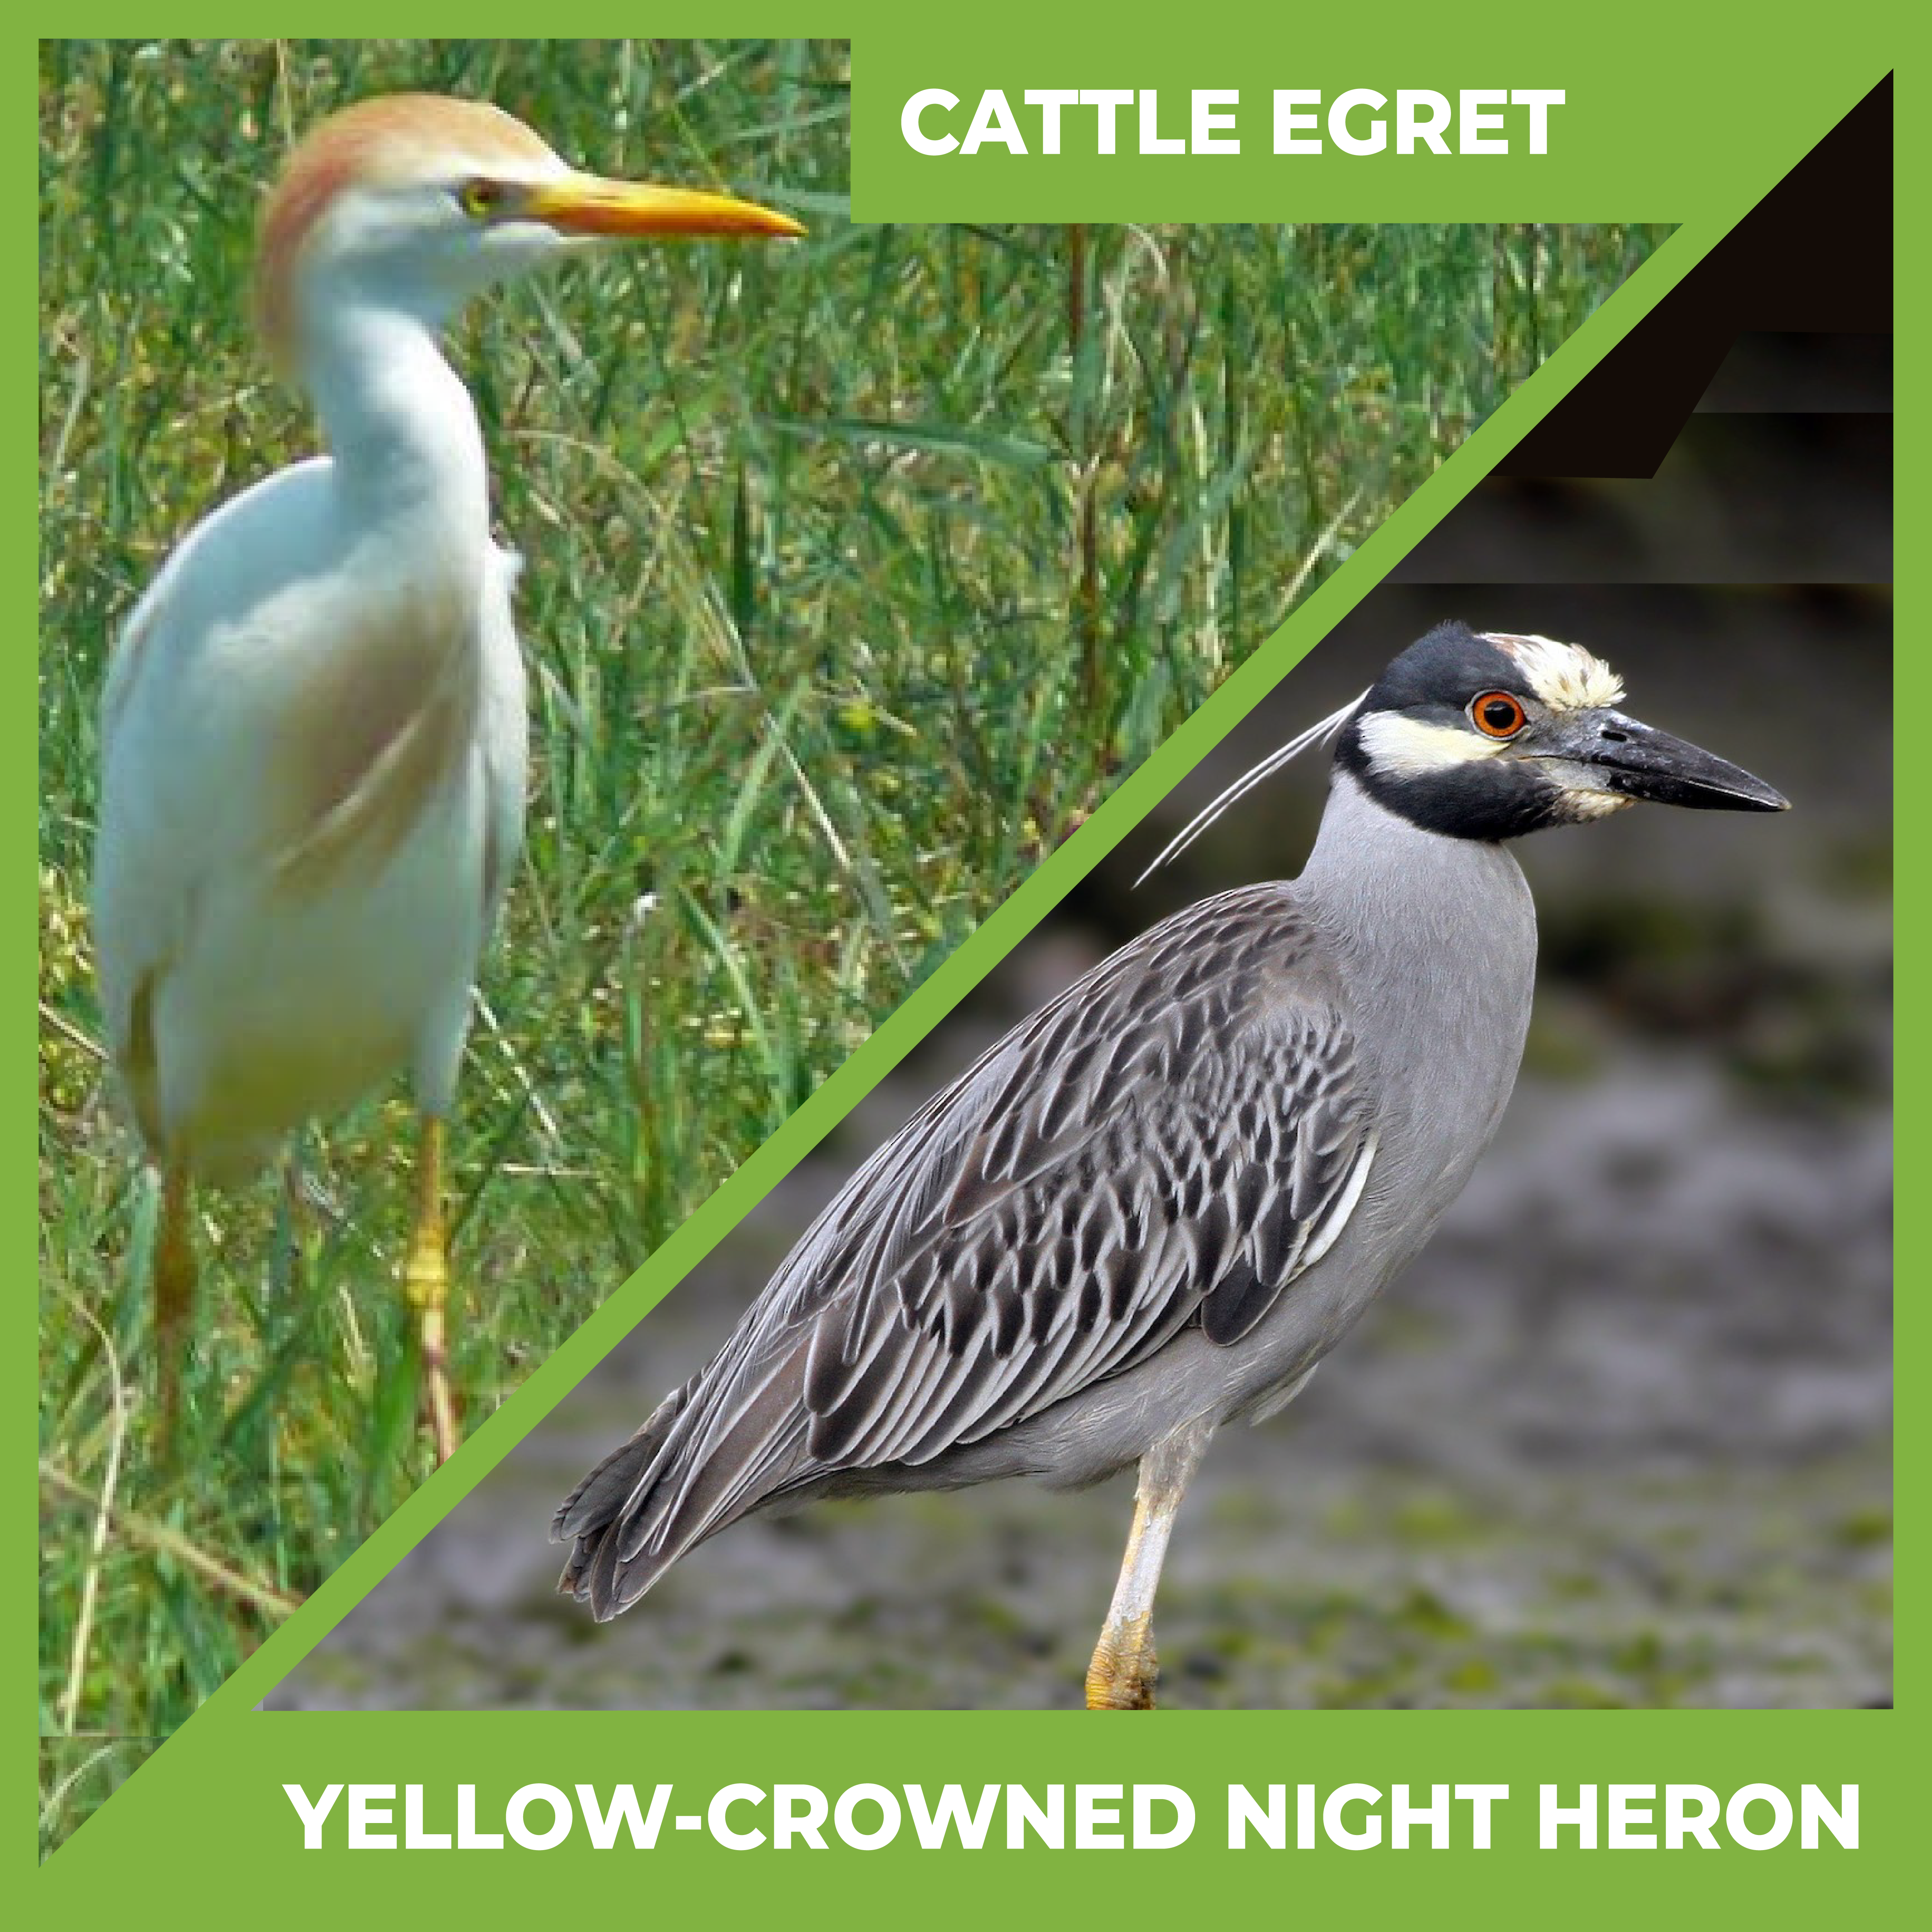 Photos of a cattle egret and a yellow-crowned night heron